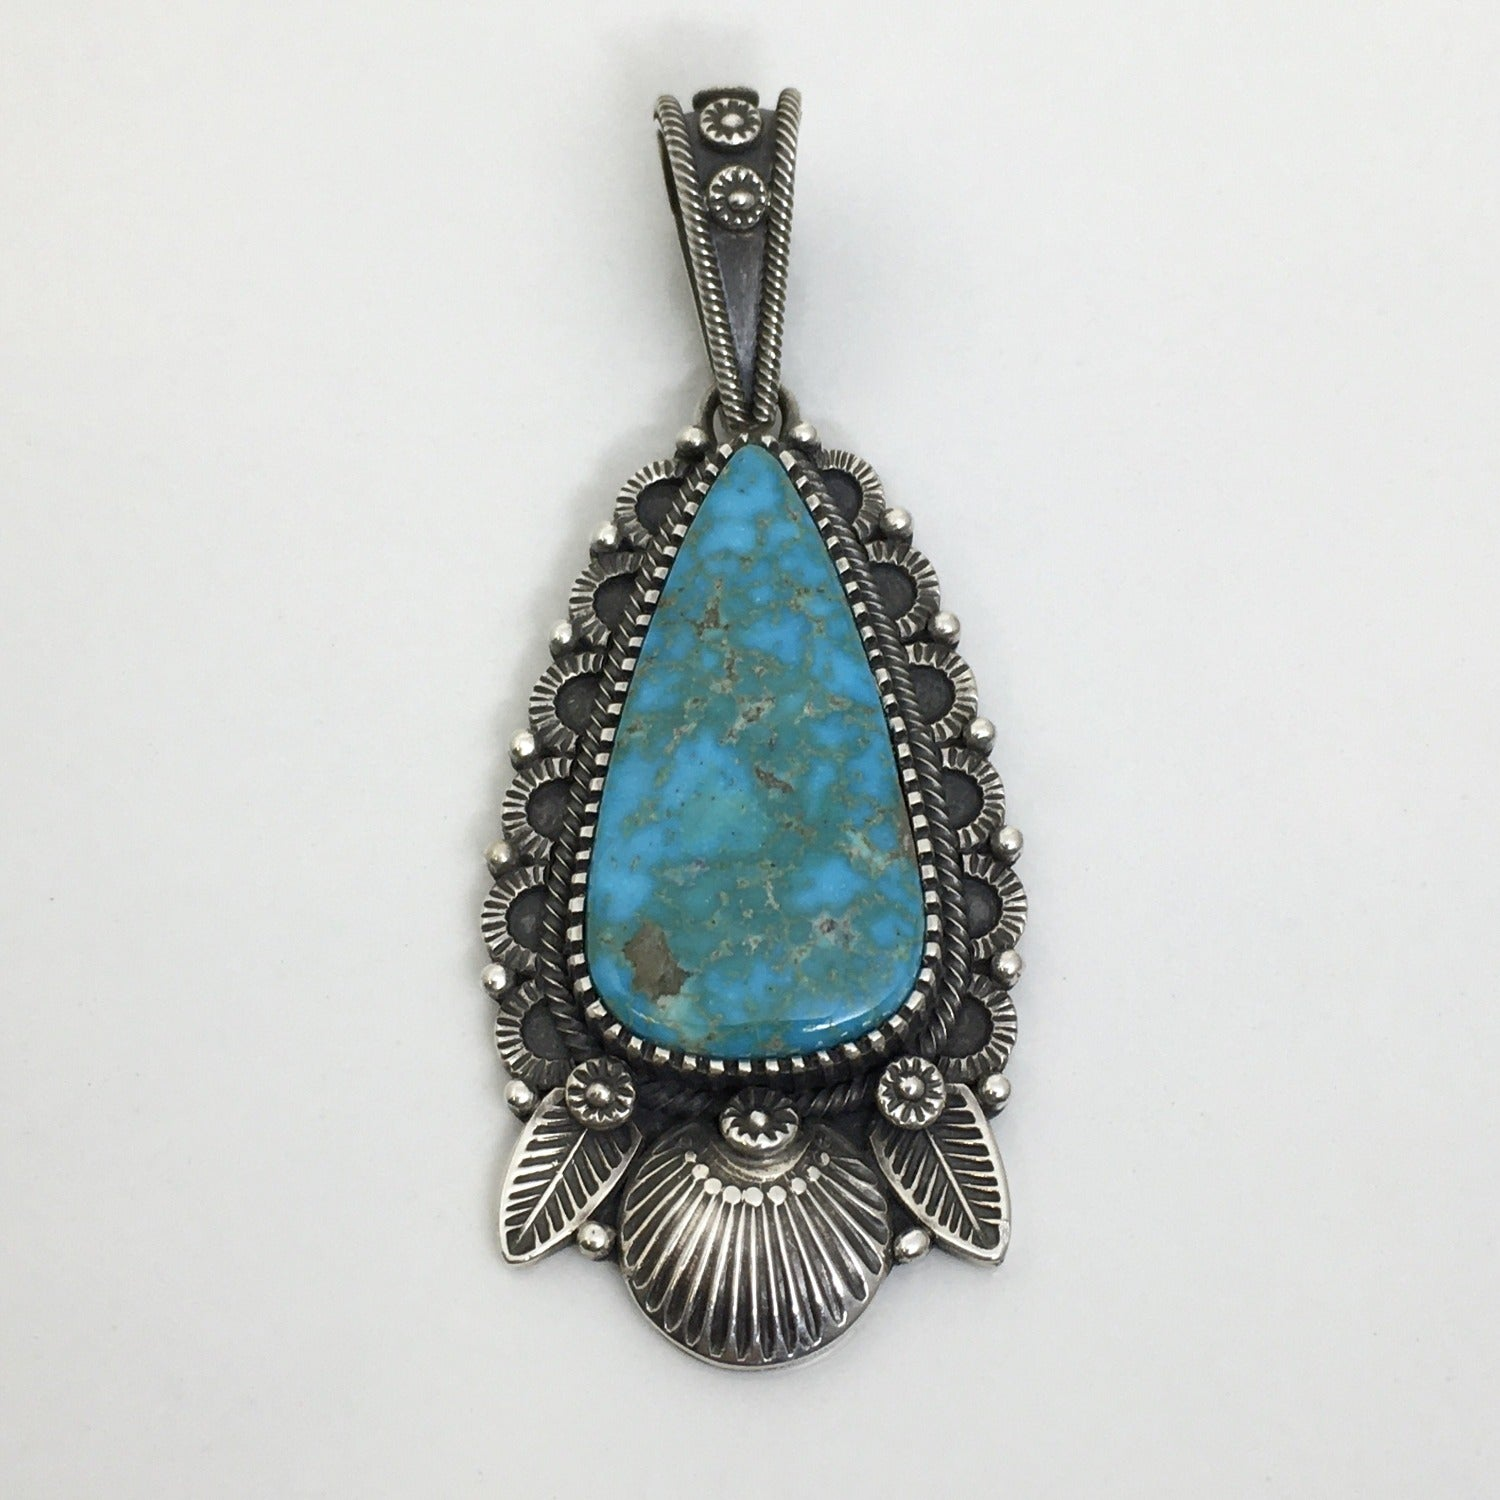 Turquoise Pendant, Navajo Jewelry by Ivan Howard at Raven Makes Gallery